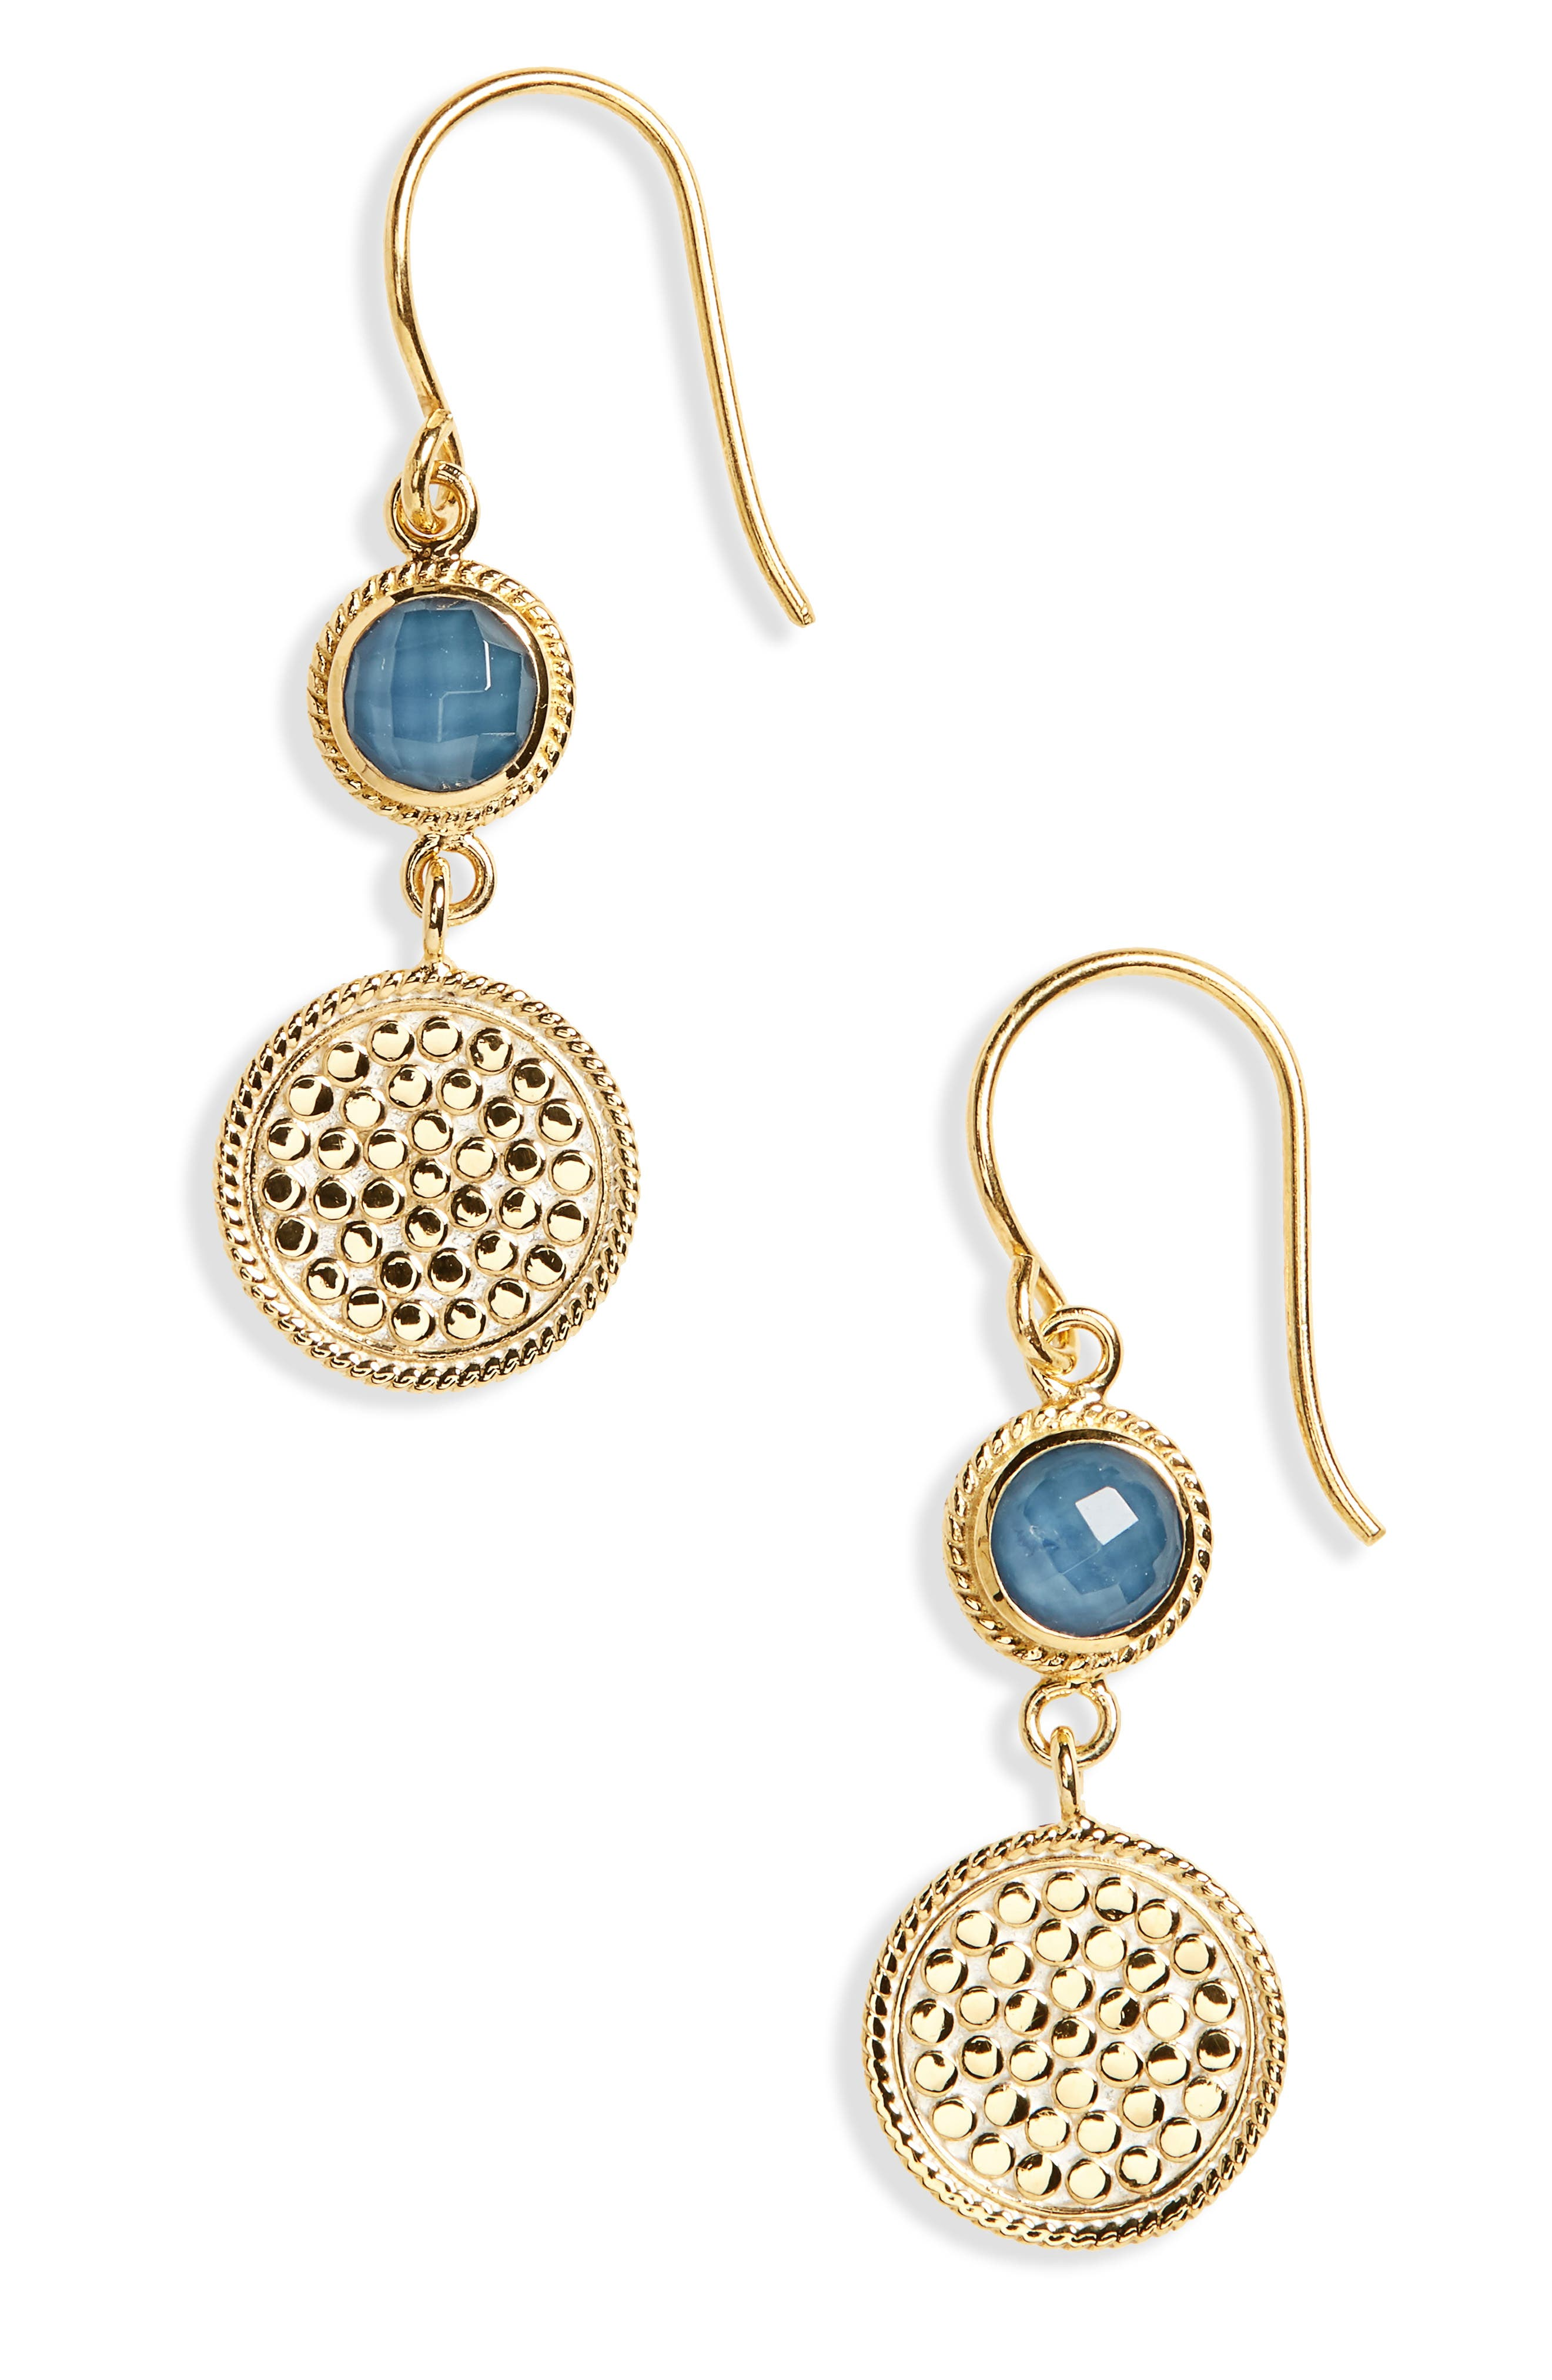 Semiprecious Stone Double Drop Earrings,                             Main thumbnail 1, color,                             Gold/ Blue Quartz